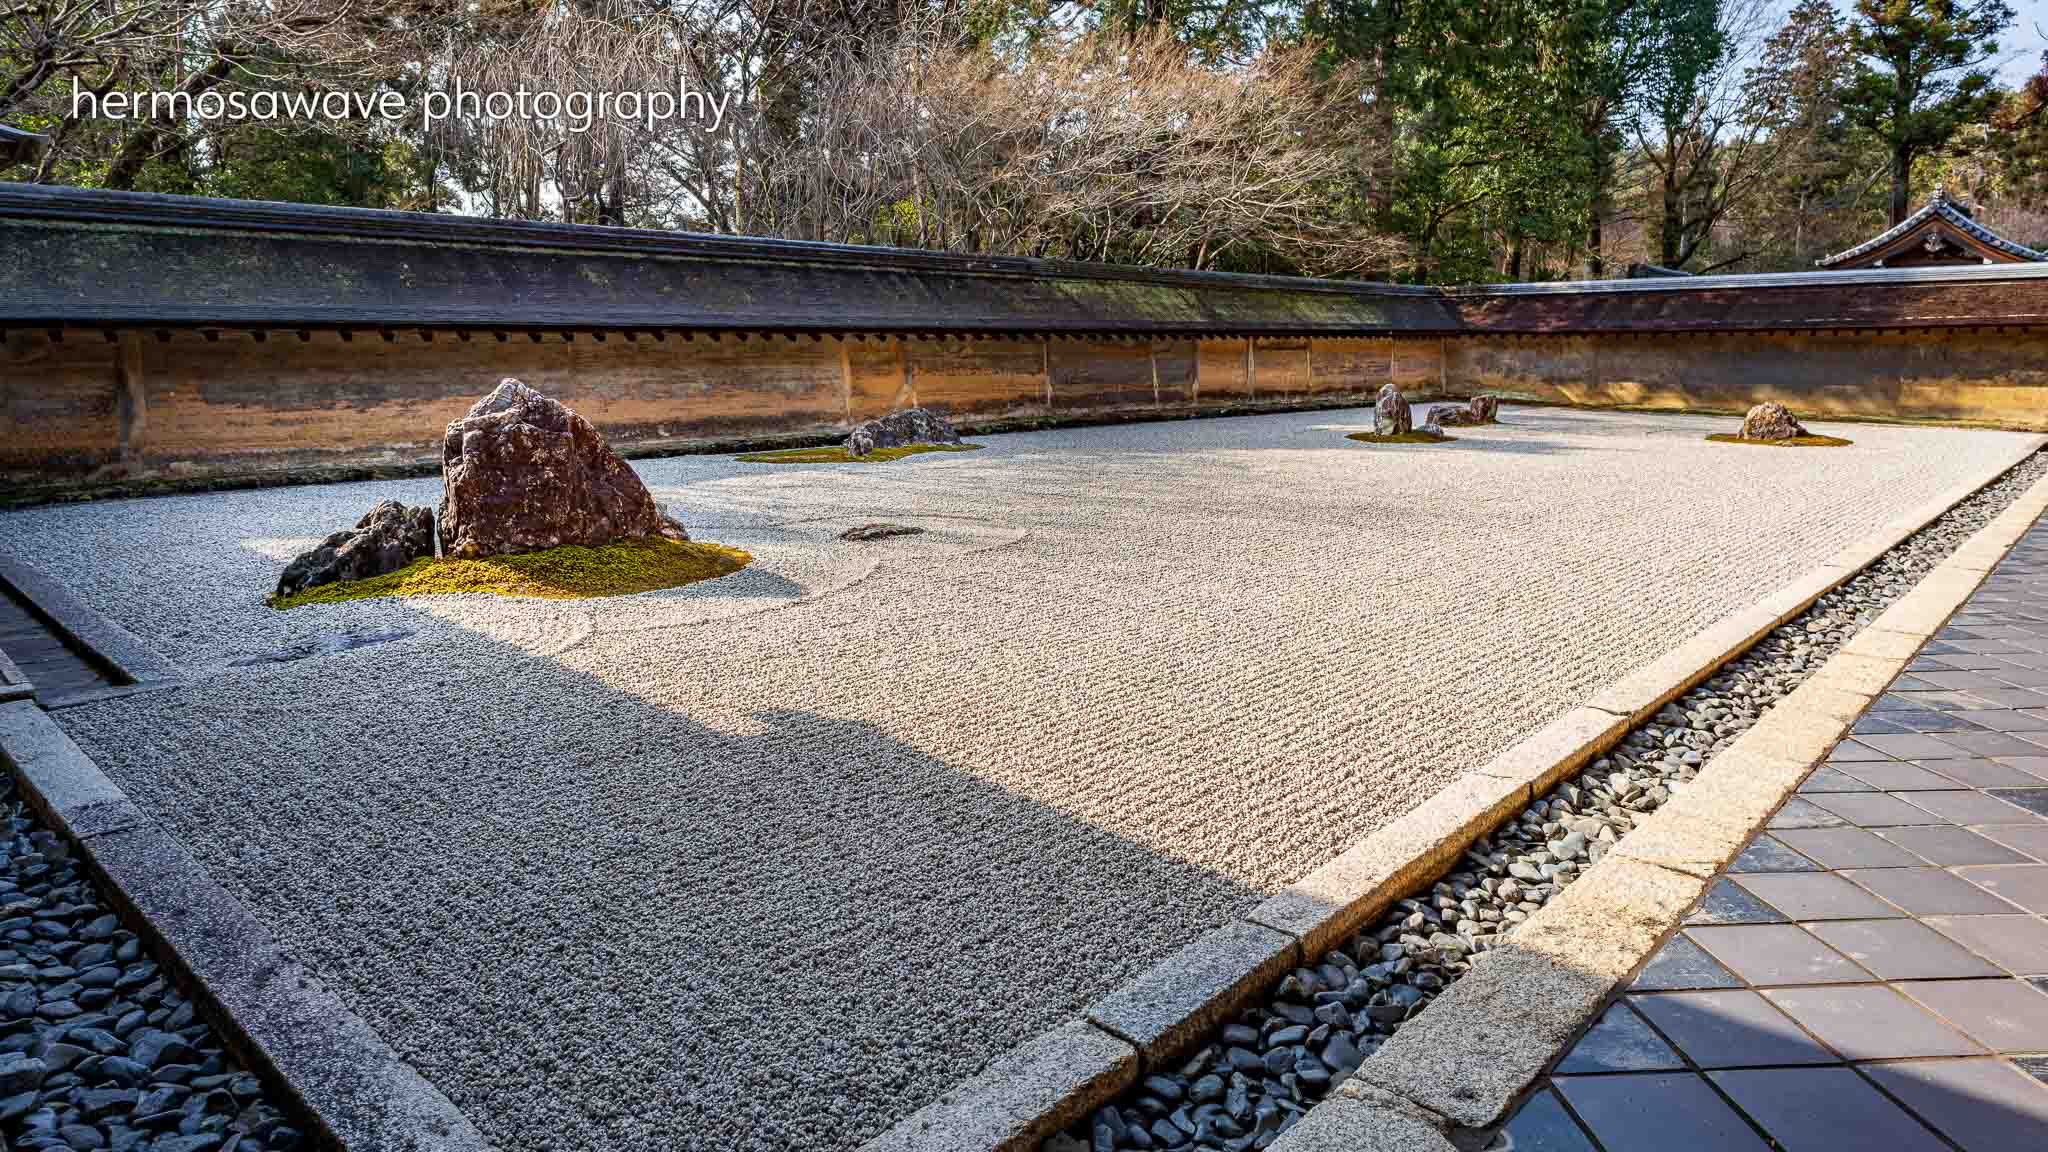 Morning at Ryoan-ji Temple・龍安寺の朝